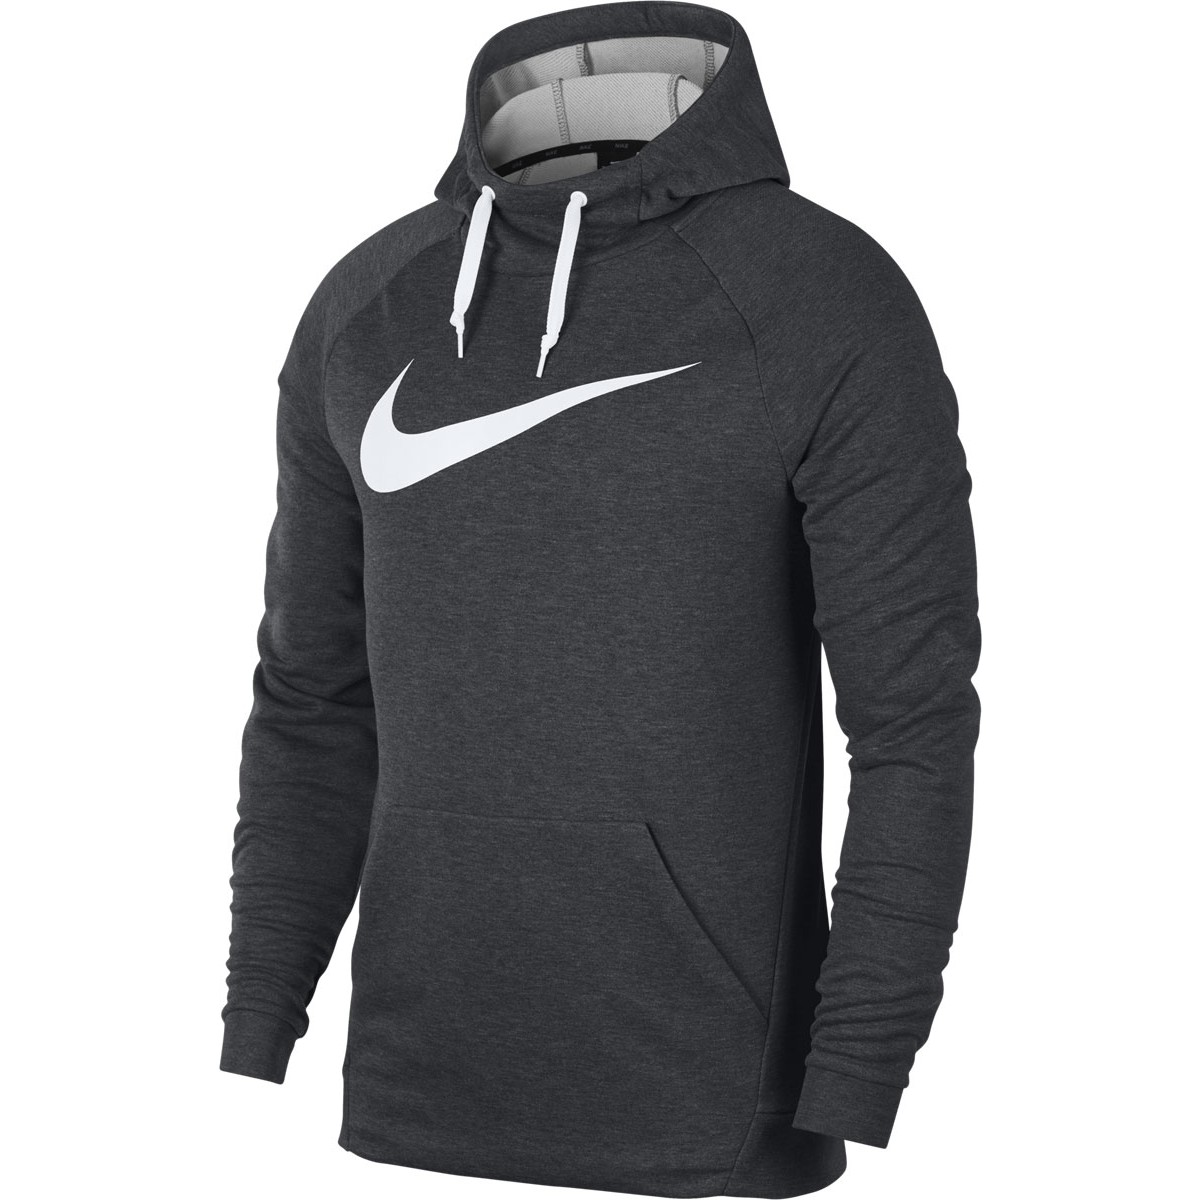 SWEAT NIKE LOGO A CAPUCHE - NIKE - Homme - Vêtements | Tennispro